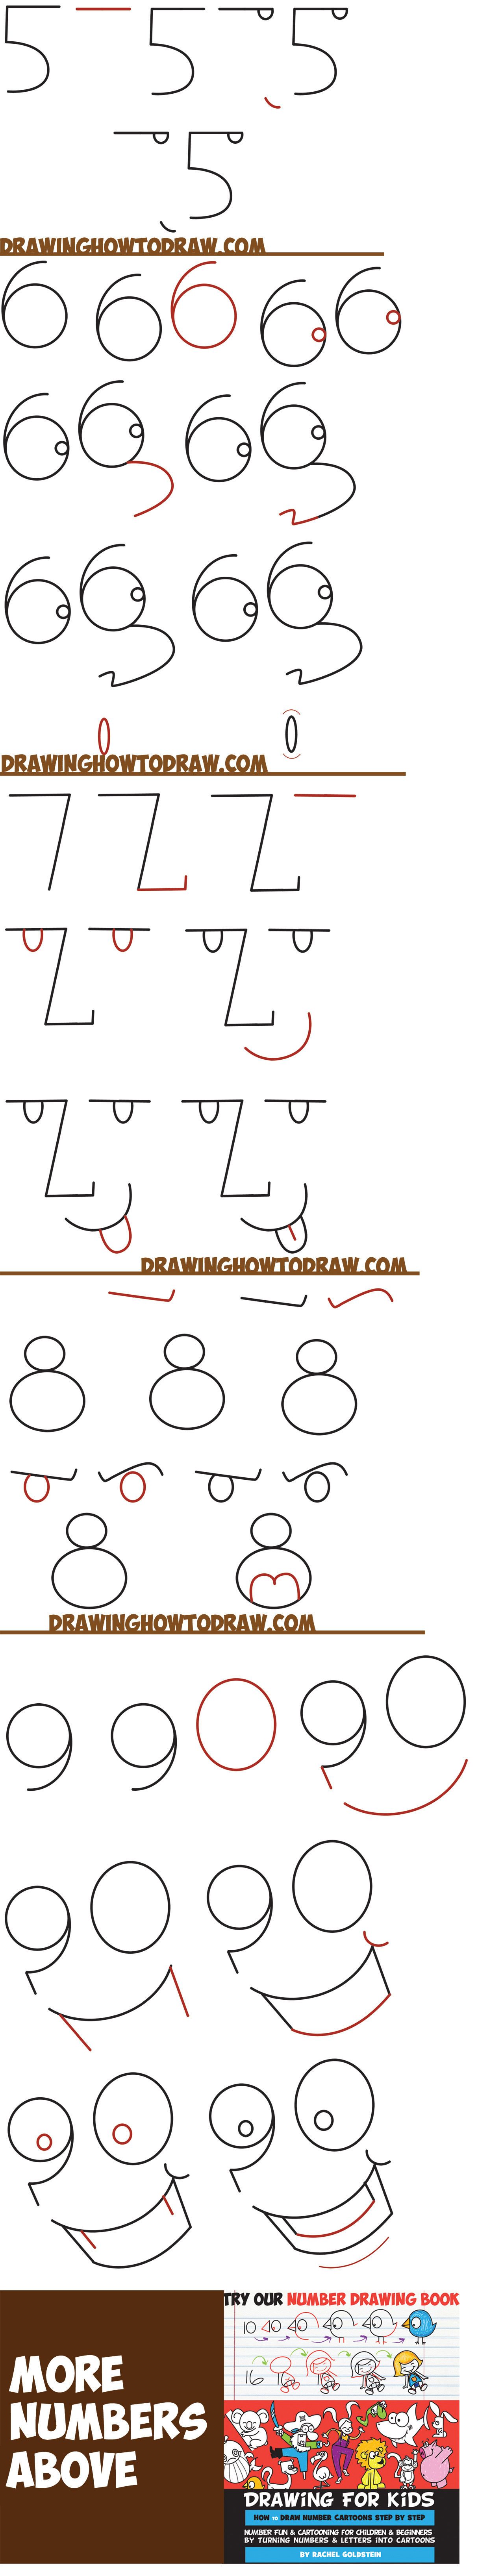 How to draw cartoon faces from numbers 1 9 easy step by for Learn drawing online step by step